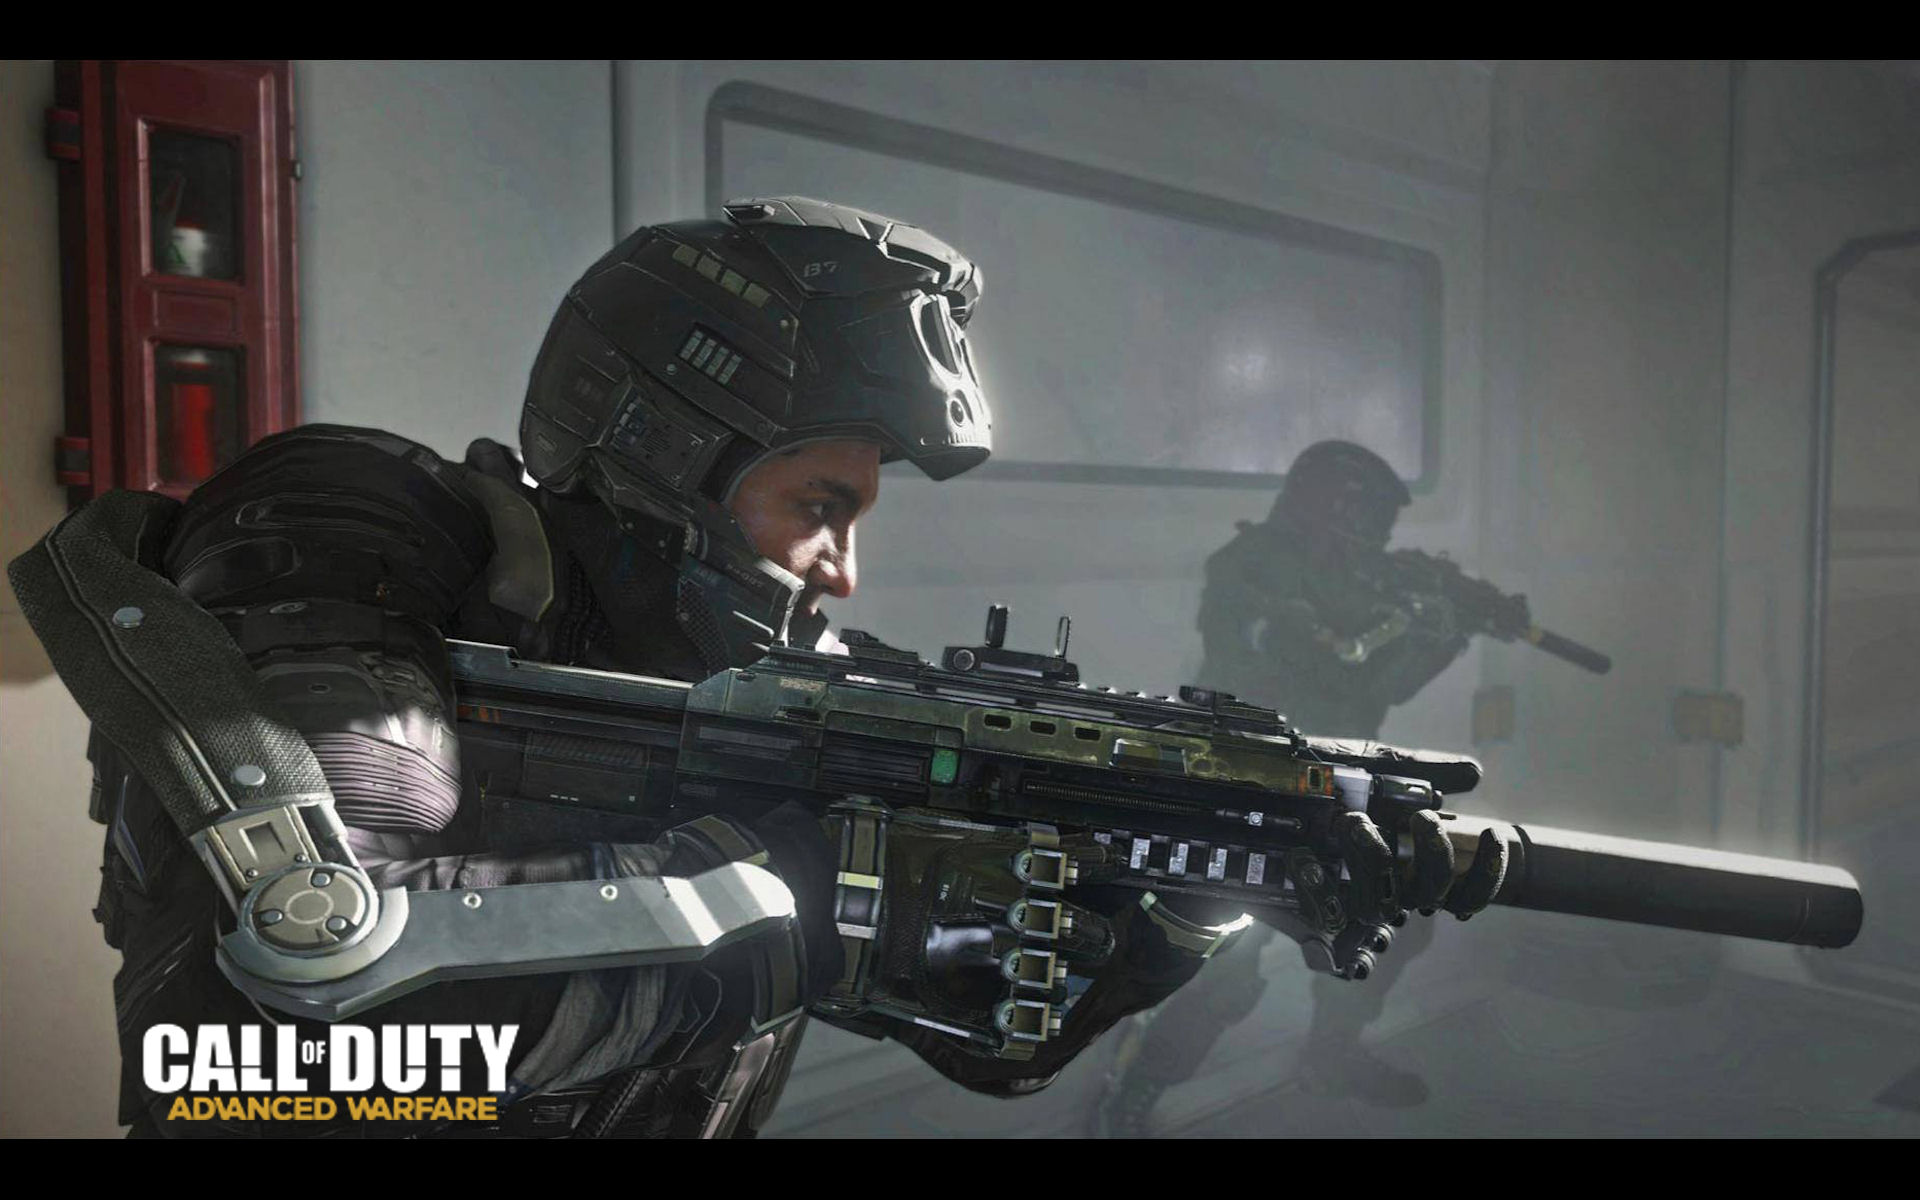 Call Of Duty Advanced Warfare Wallpaper Free Download